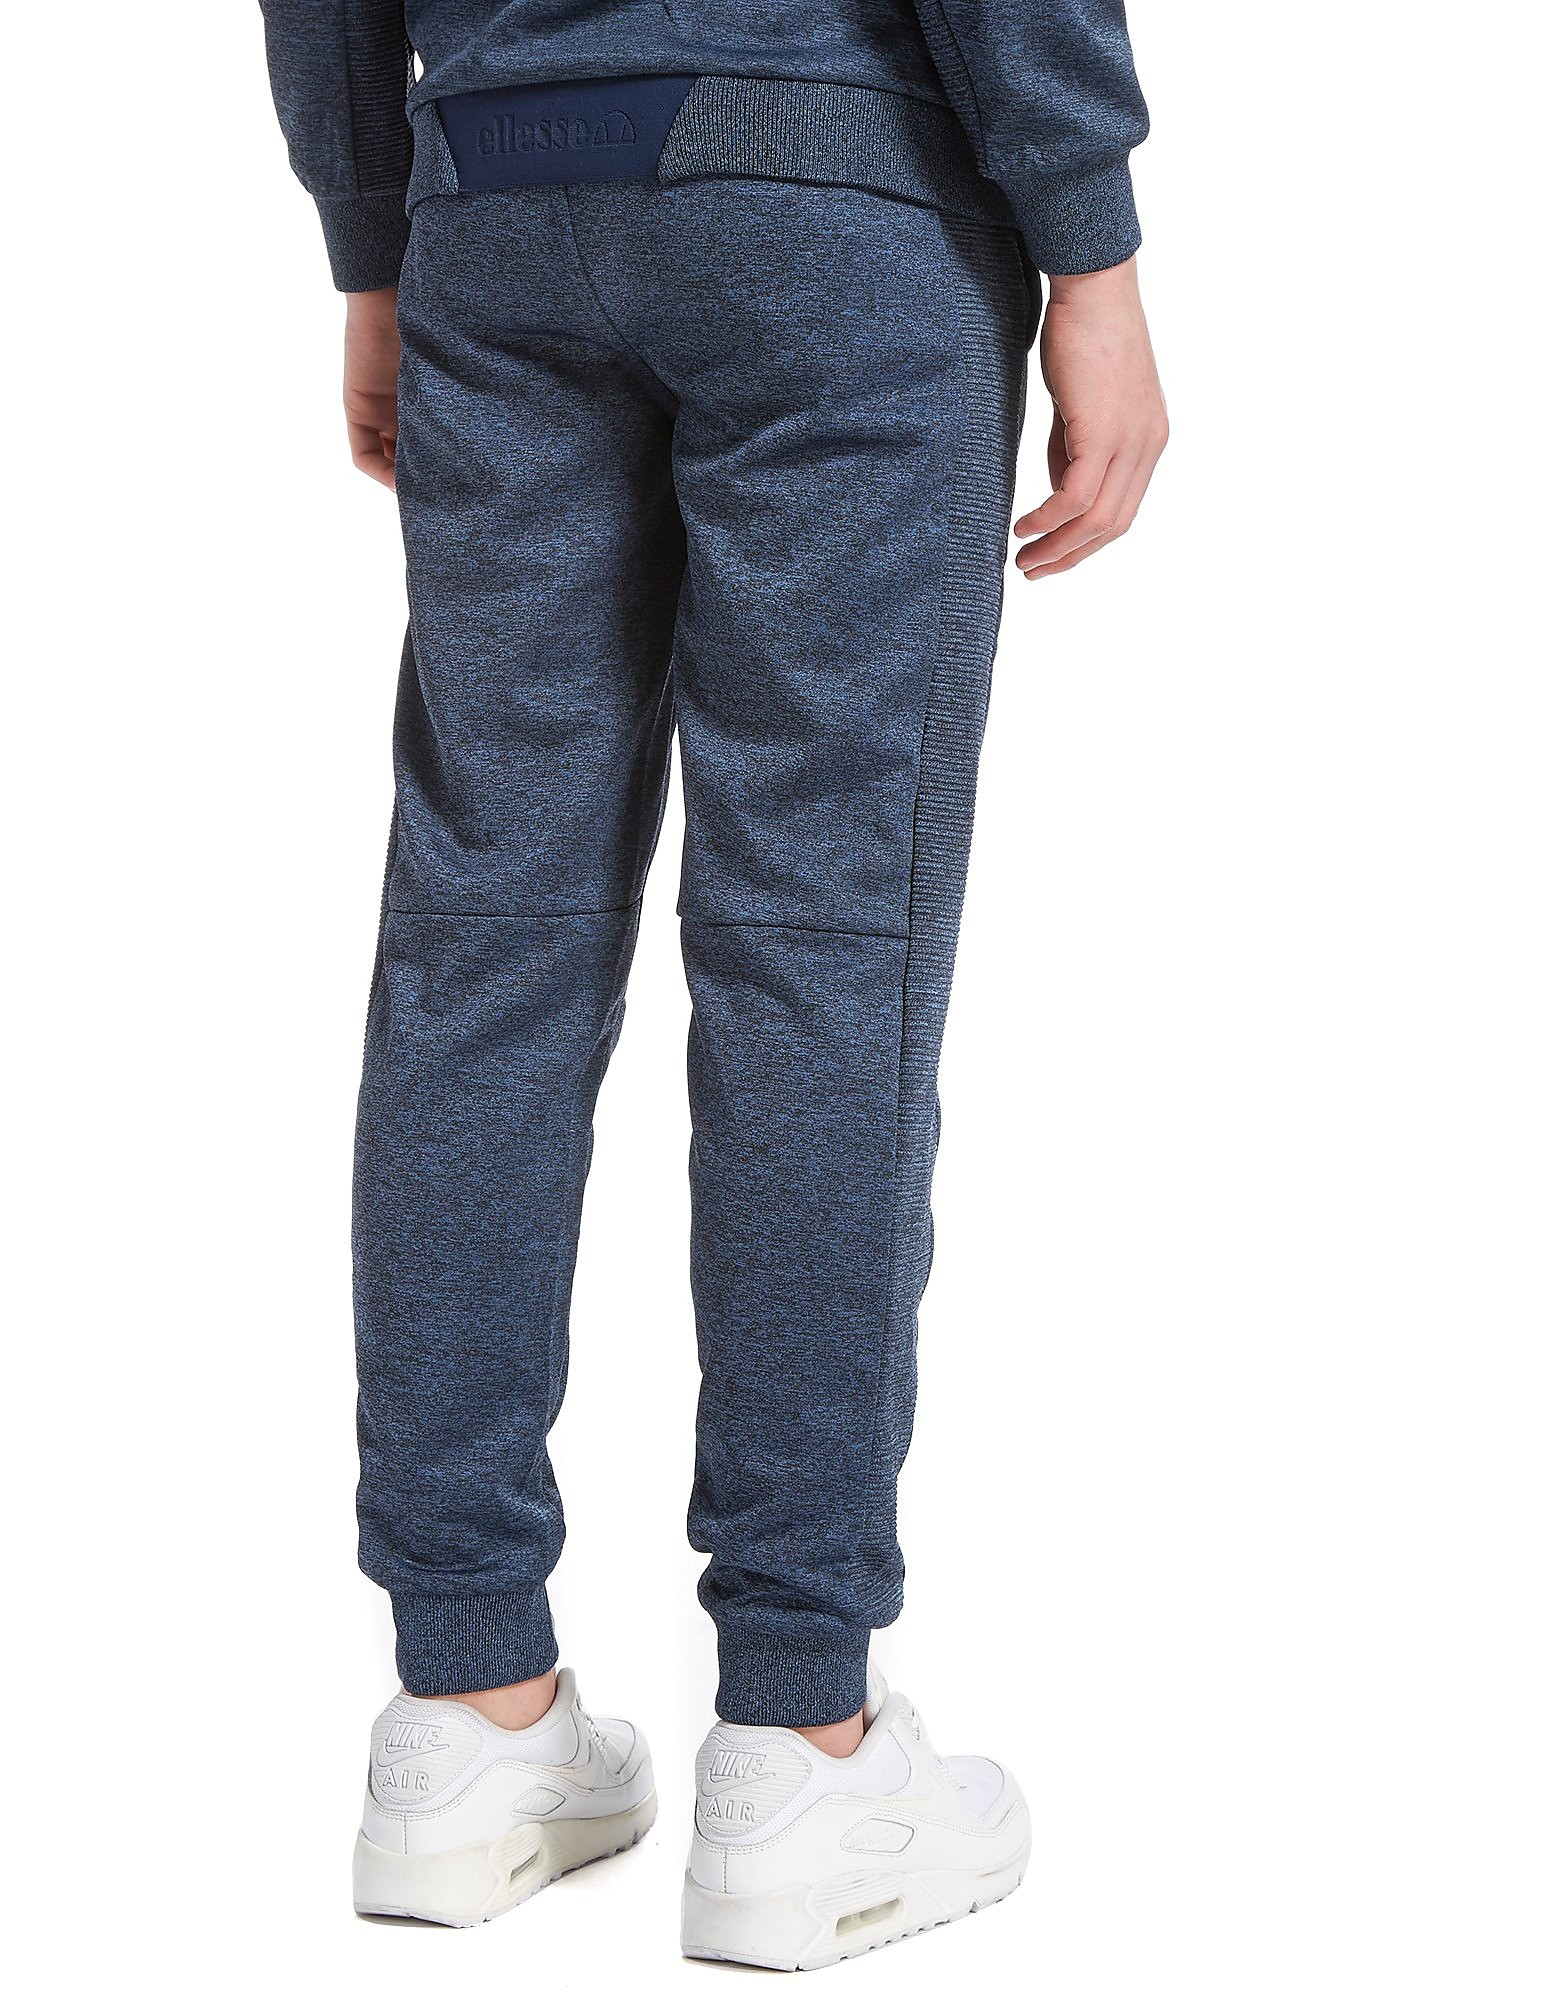 Ellesse Pantalon de survêtement Recito Poly Marl Junior